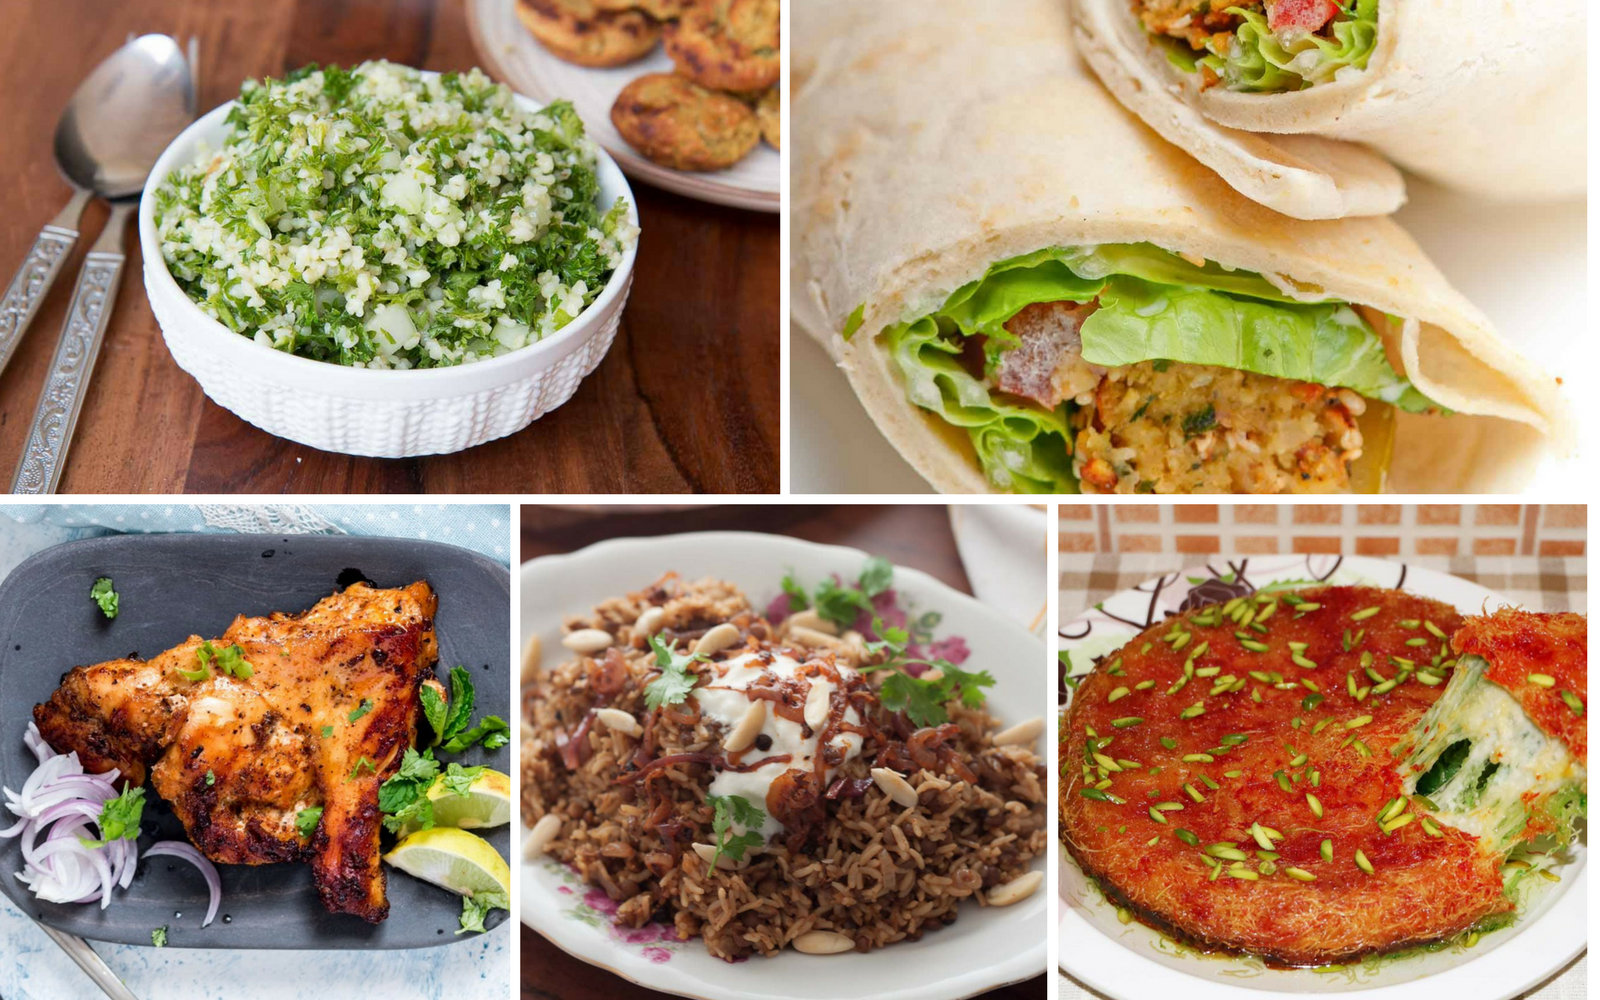 9 delicious middle eastern recipes for a special weekend dinner by 9 delicious middle eastern recipes for a special weekend dinner forumfinder Gallery